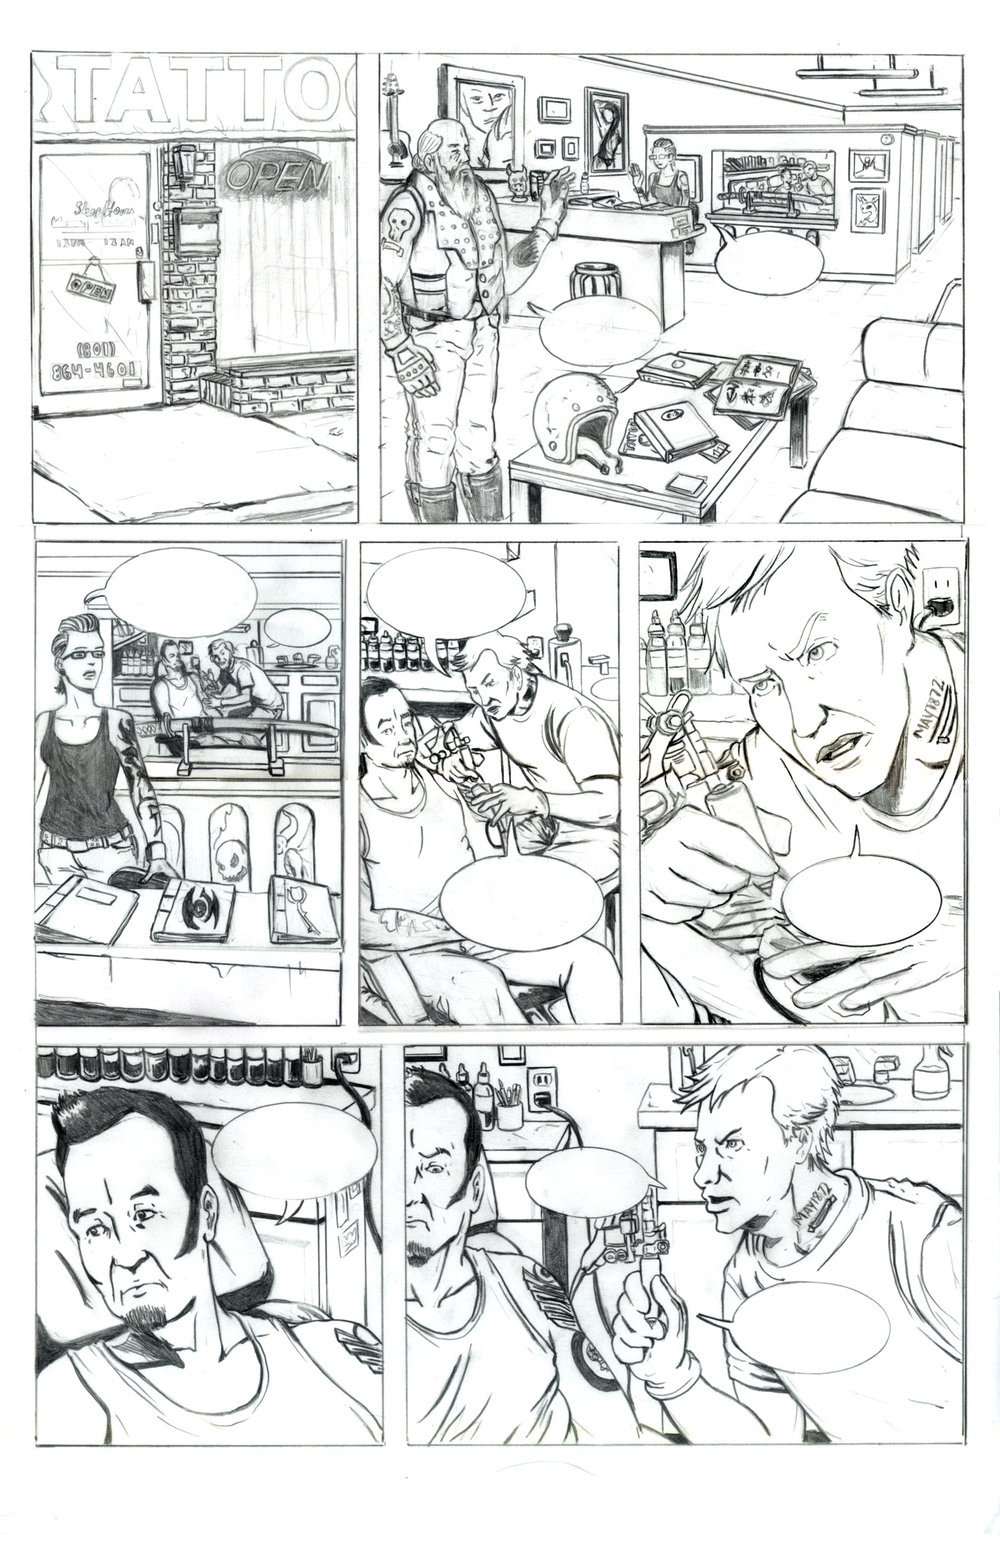 Tattoo Parlor Attack Page 1 Pencils.jpg